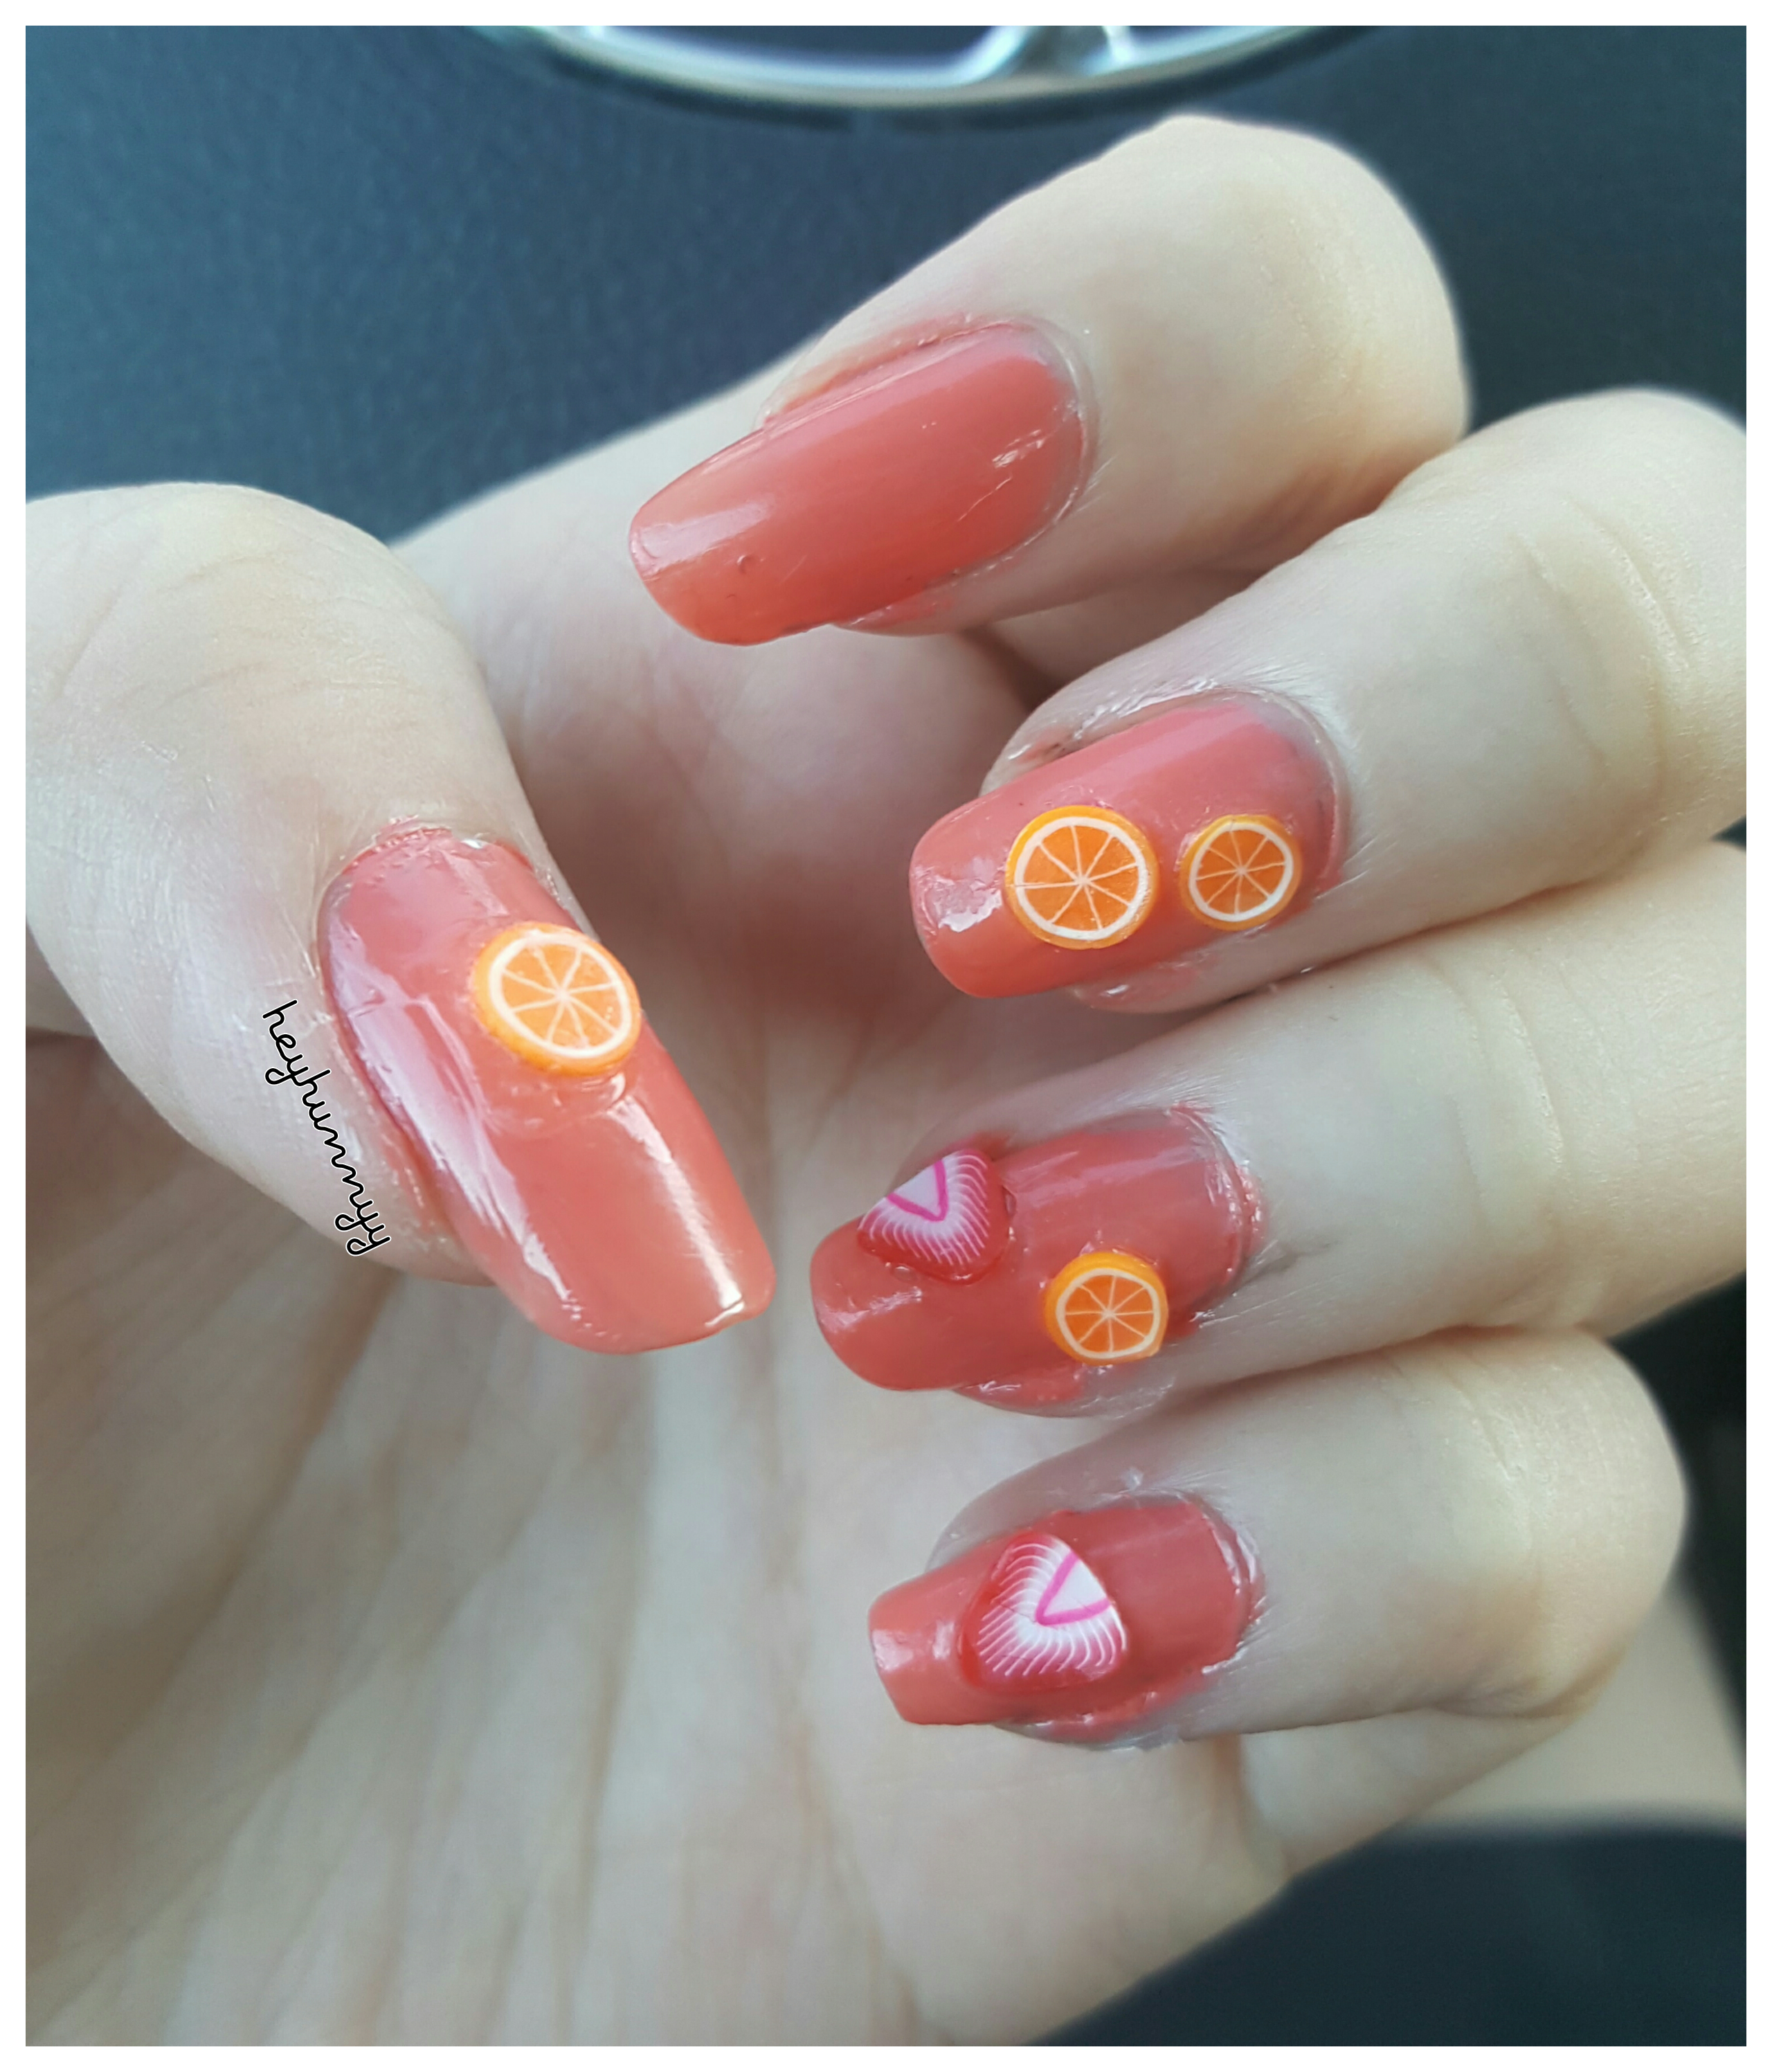 ::FRIYAY:: CITRUS NAILS!